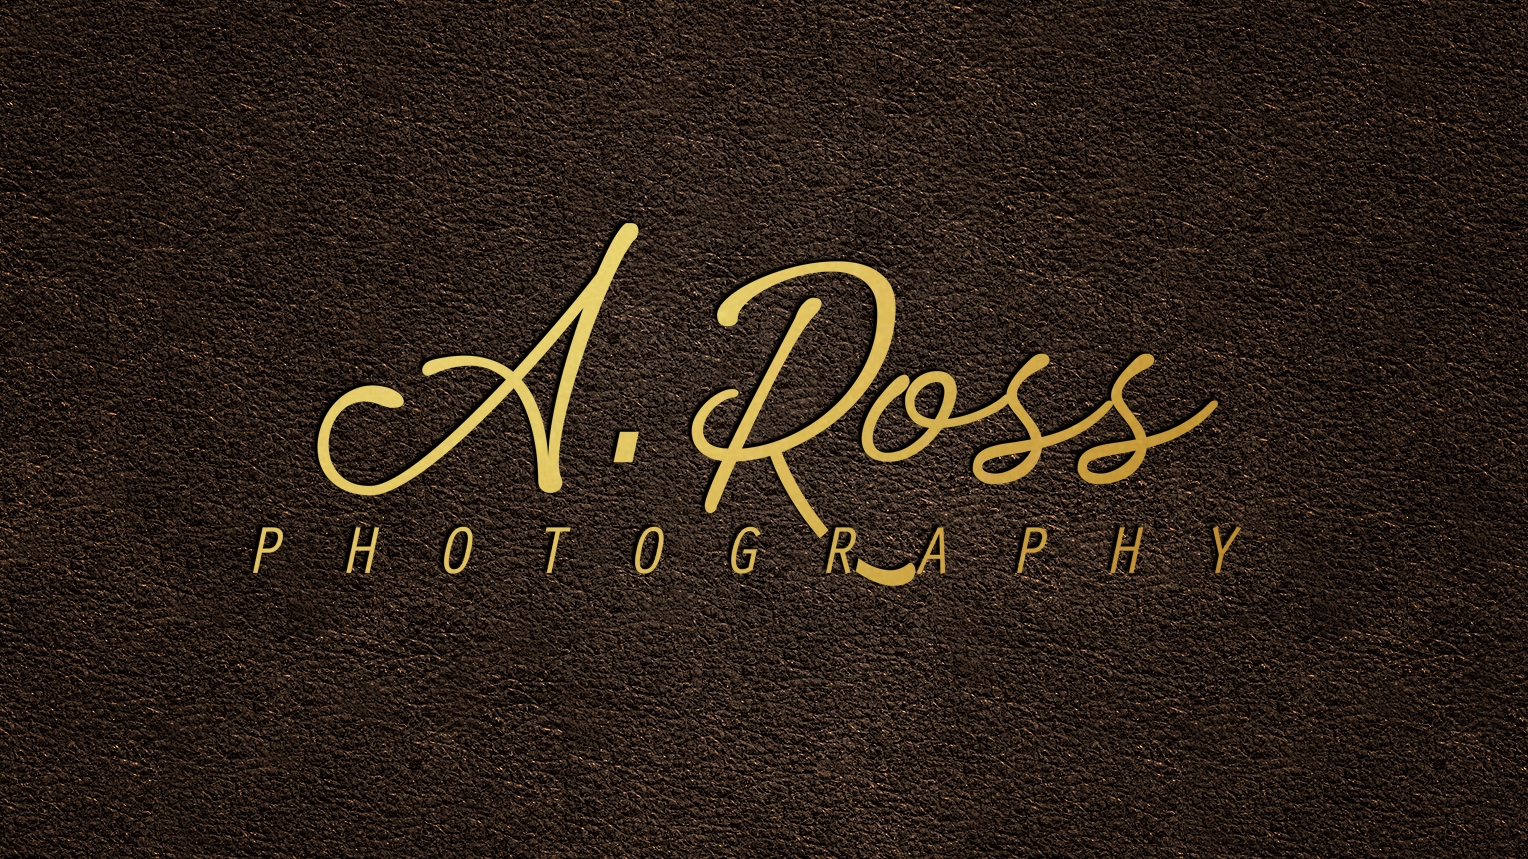 Wedding and Event Photographers in Akron Ohio - Akron, OH 44305   |   (330)-203-1193